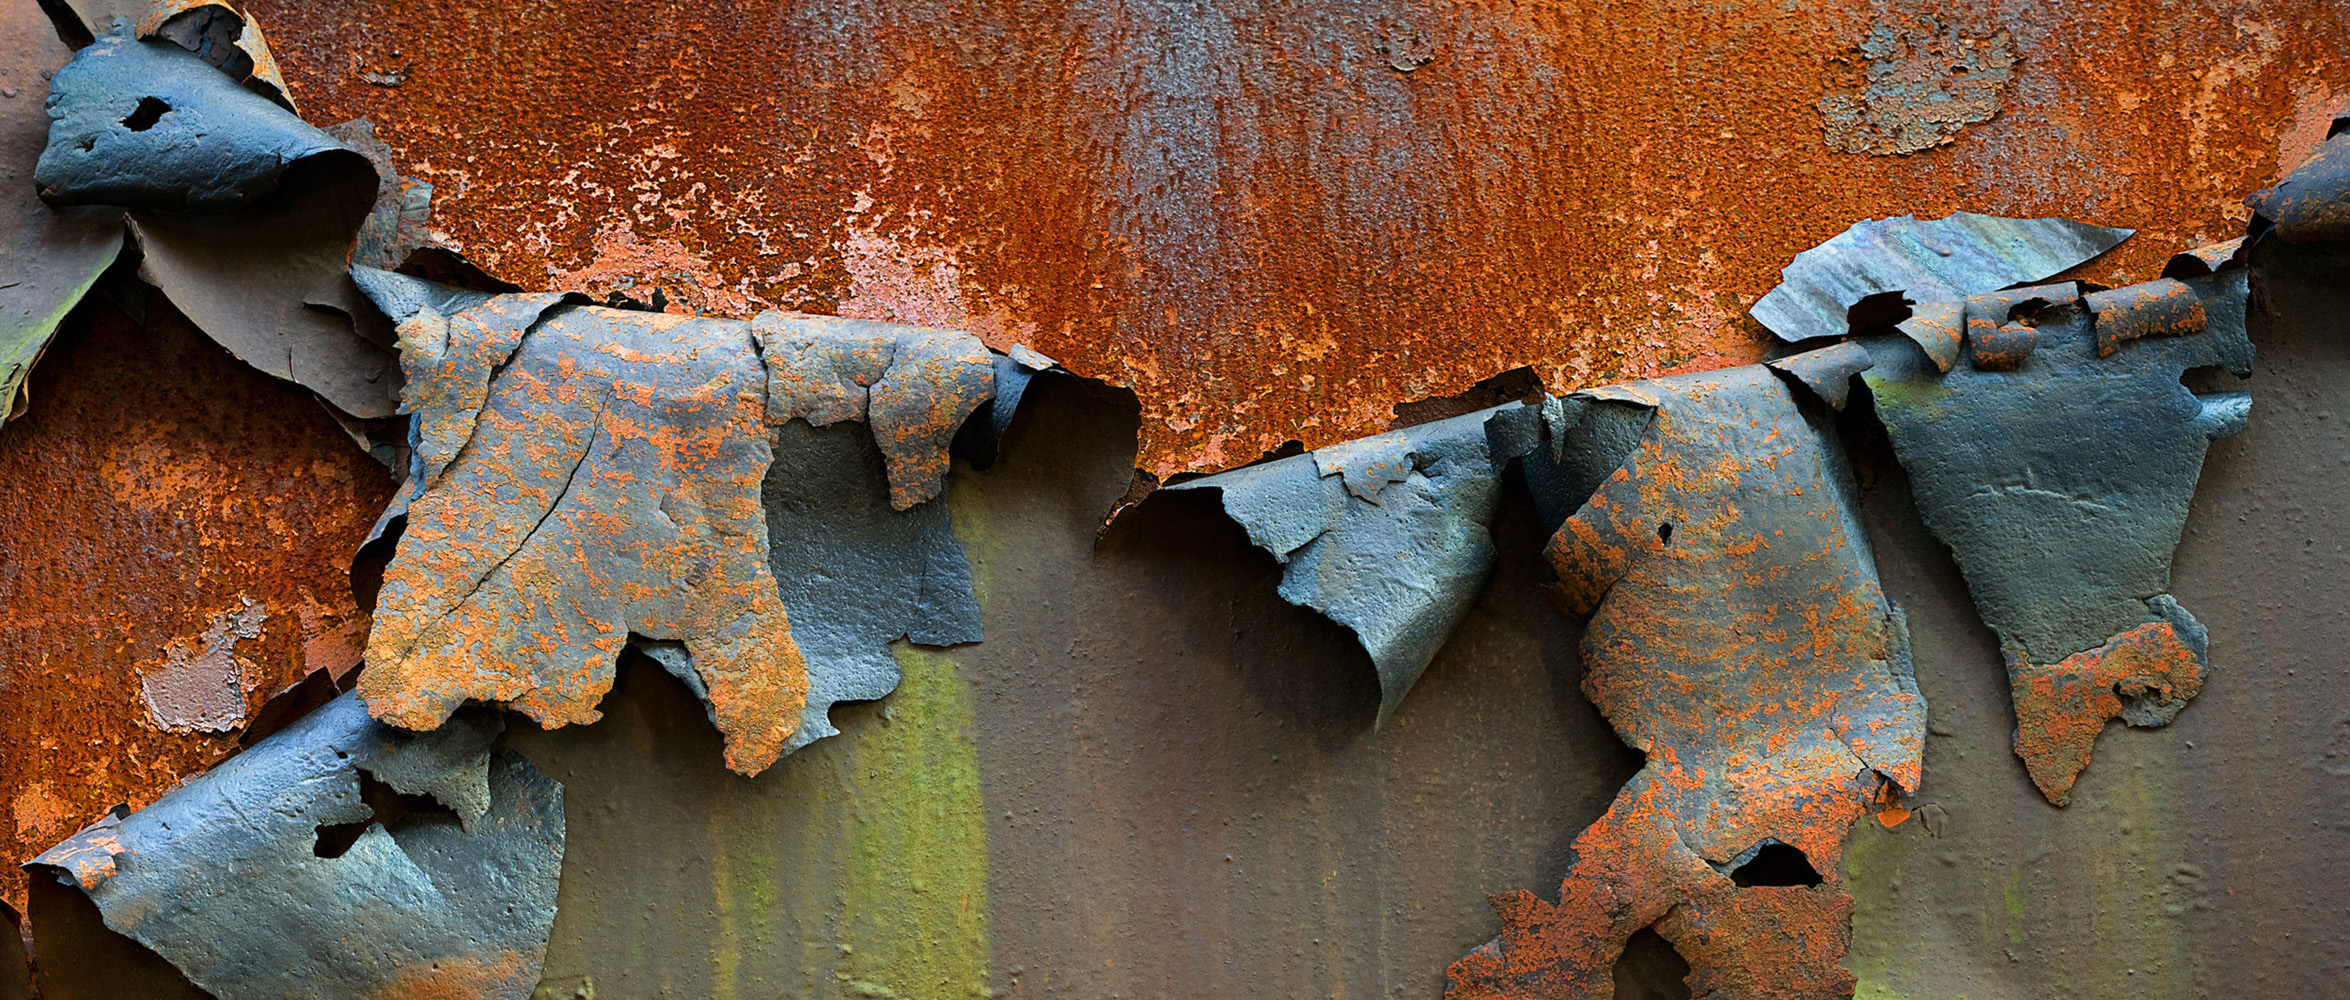 picture by Alyssa Eve Csuk of rusted steel and peeling paint